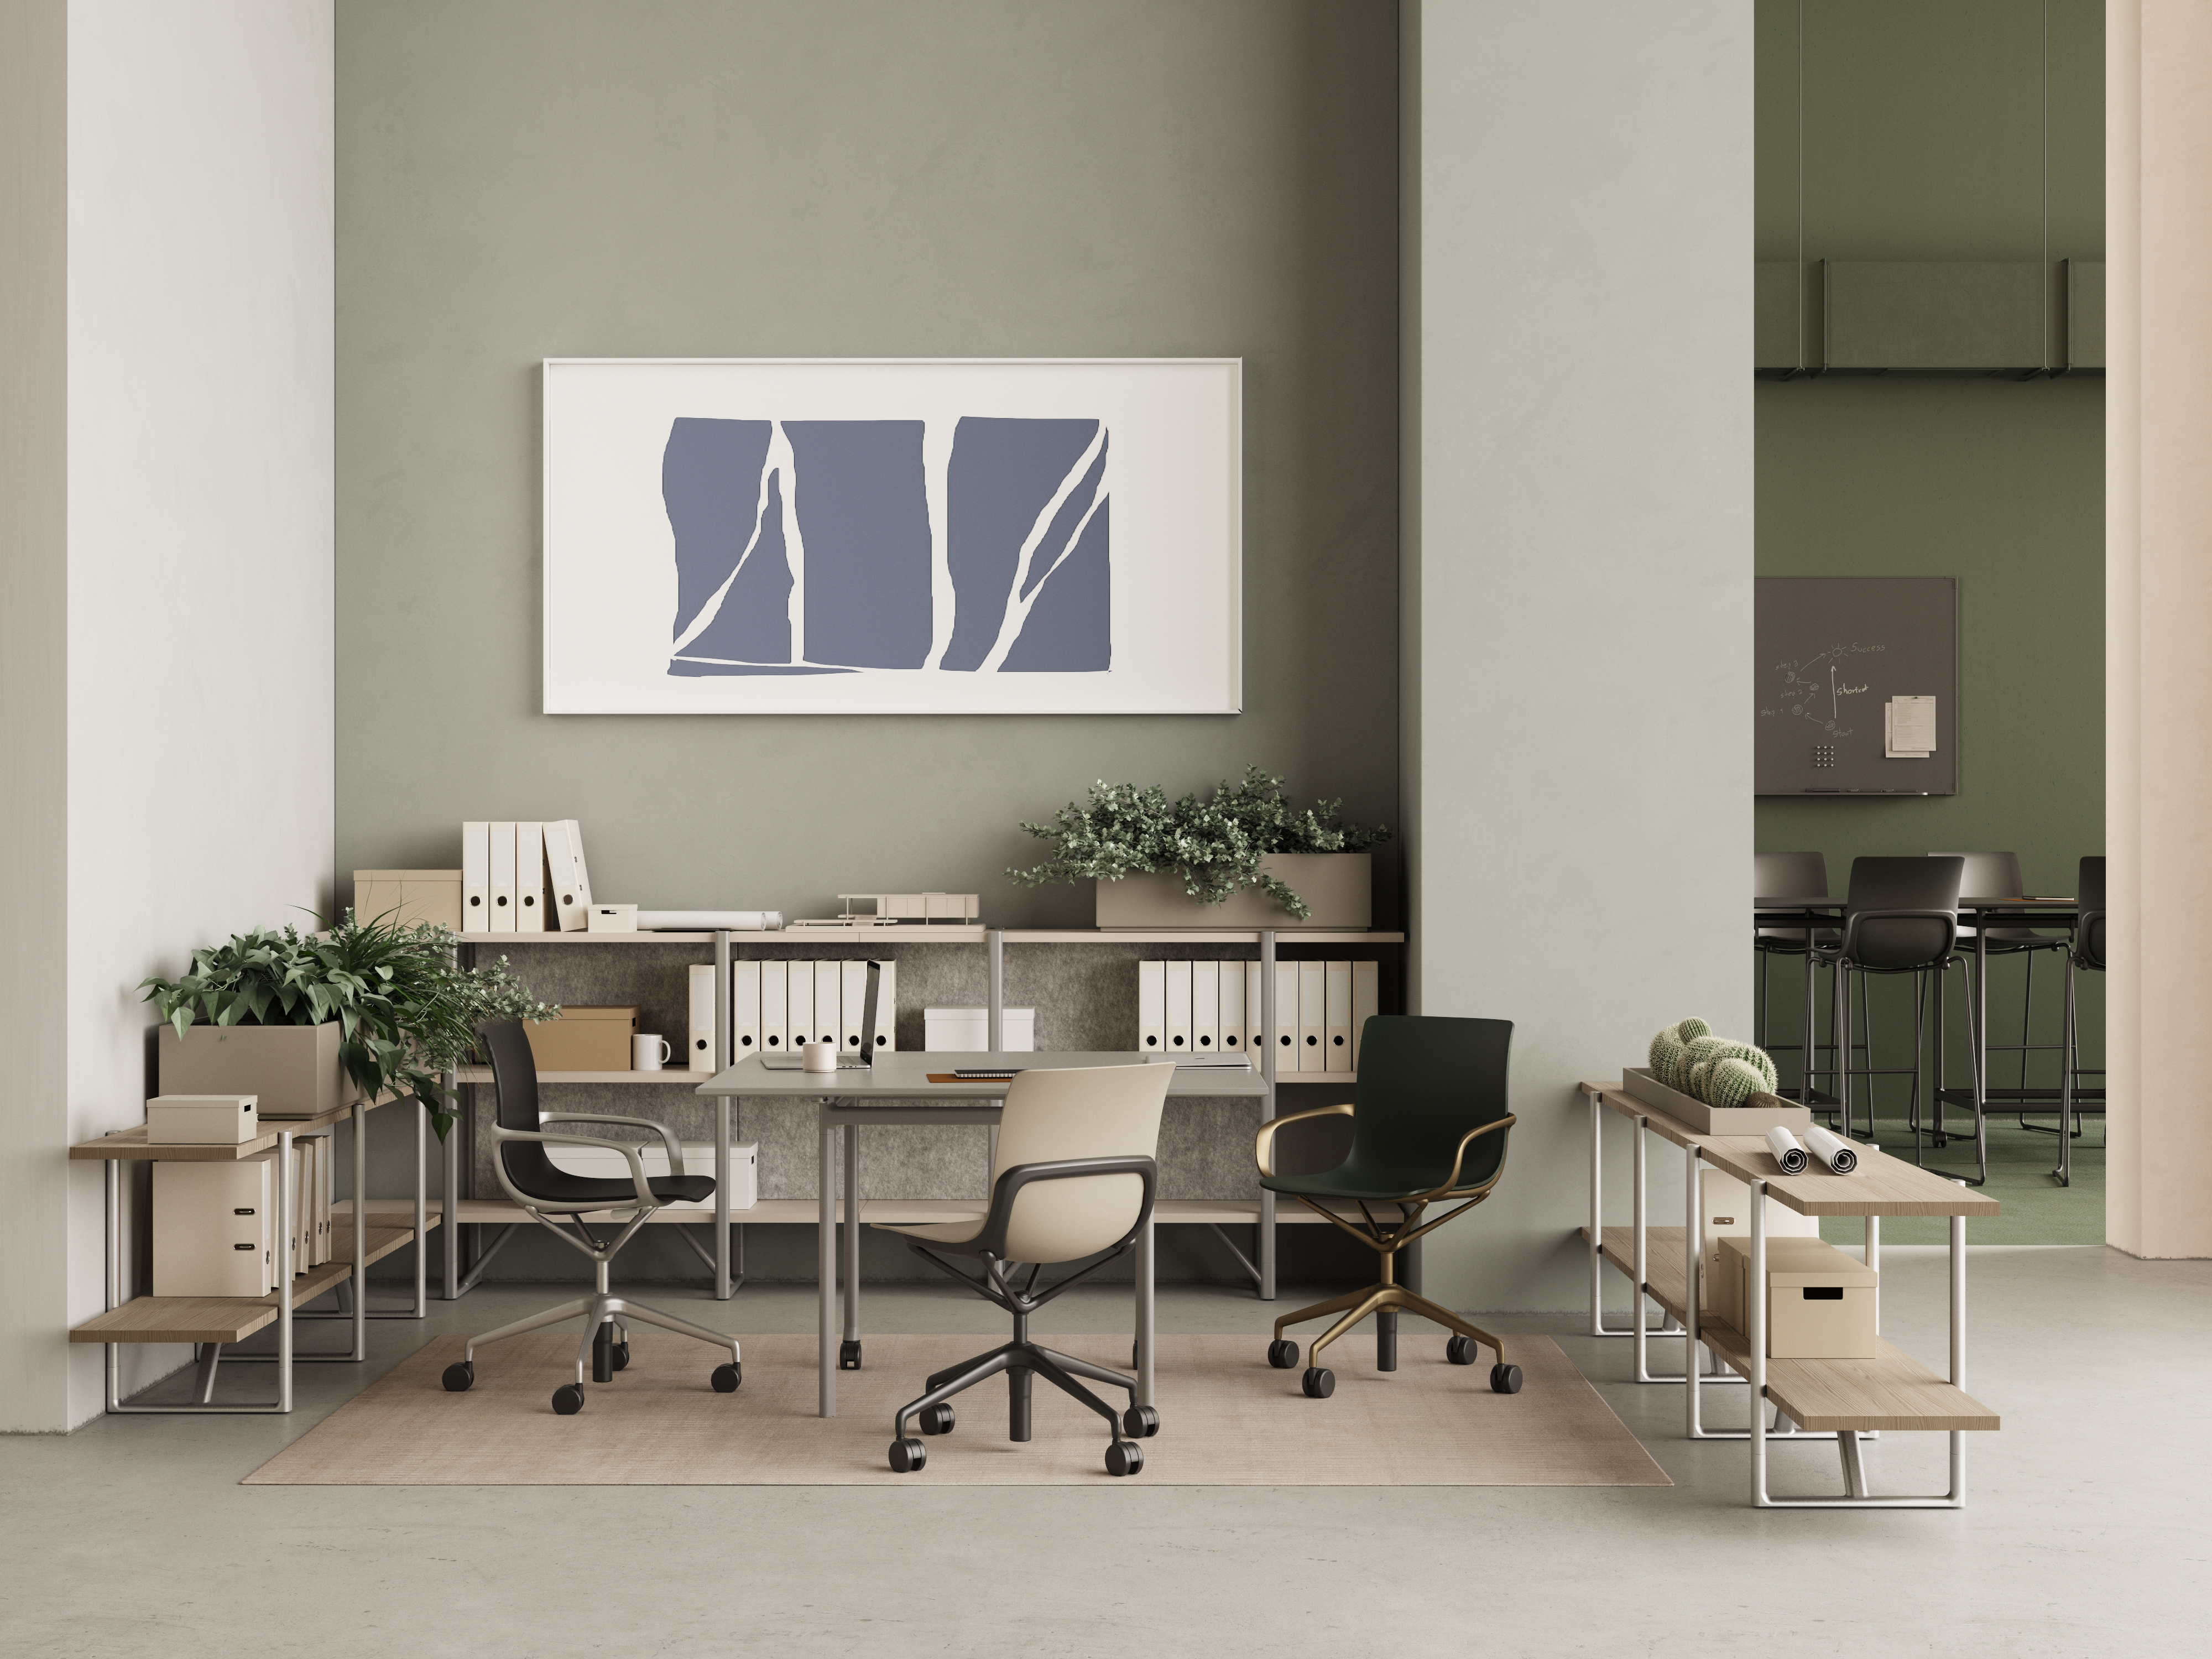 Keilhauer's Epix office furniture collection